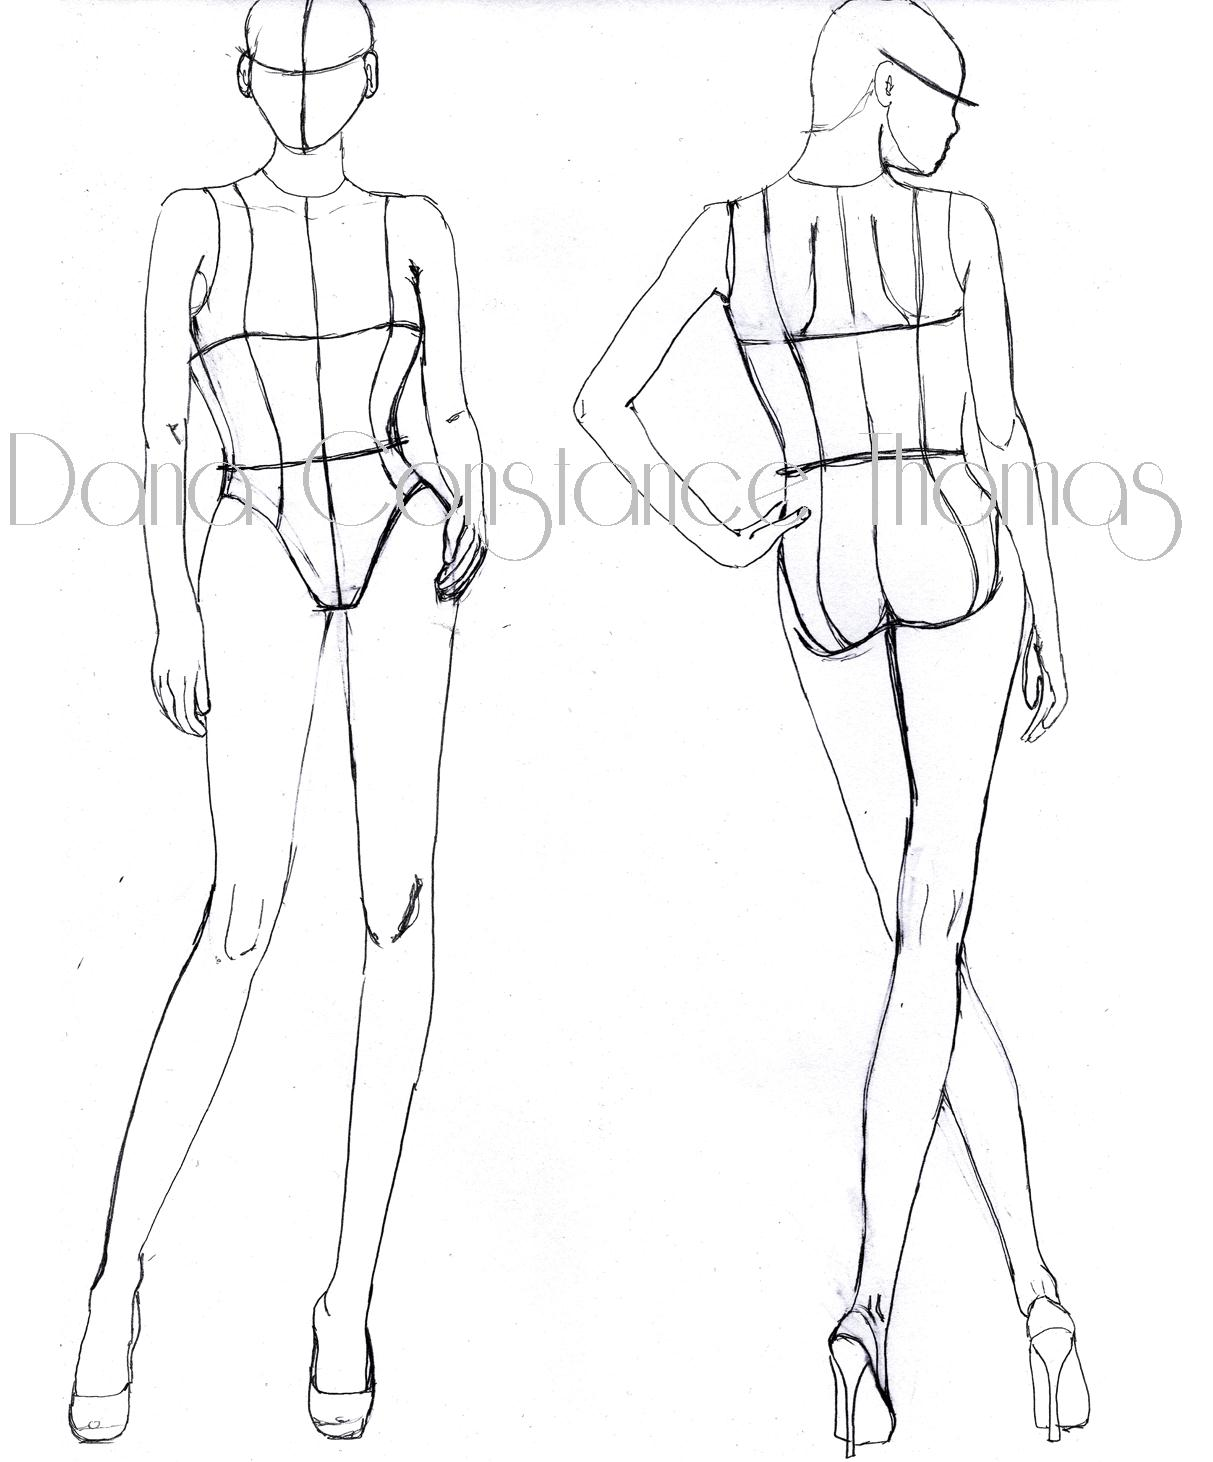 Croquis dctdesigns creative canvas page 2 posted in croquis tagged croquis drawing fashion illustration maxwellsz